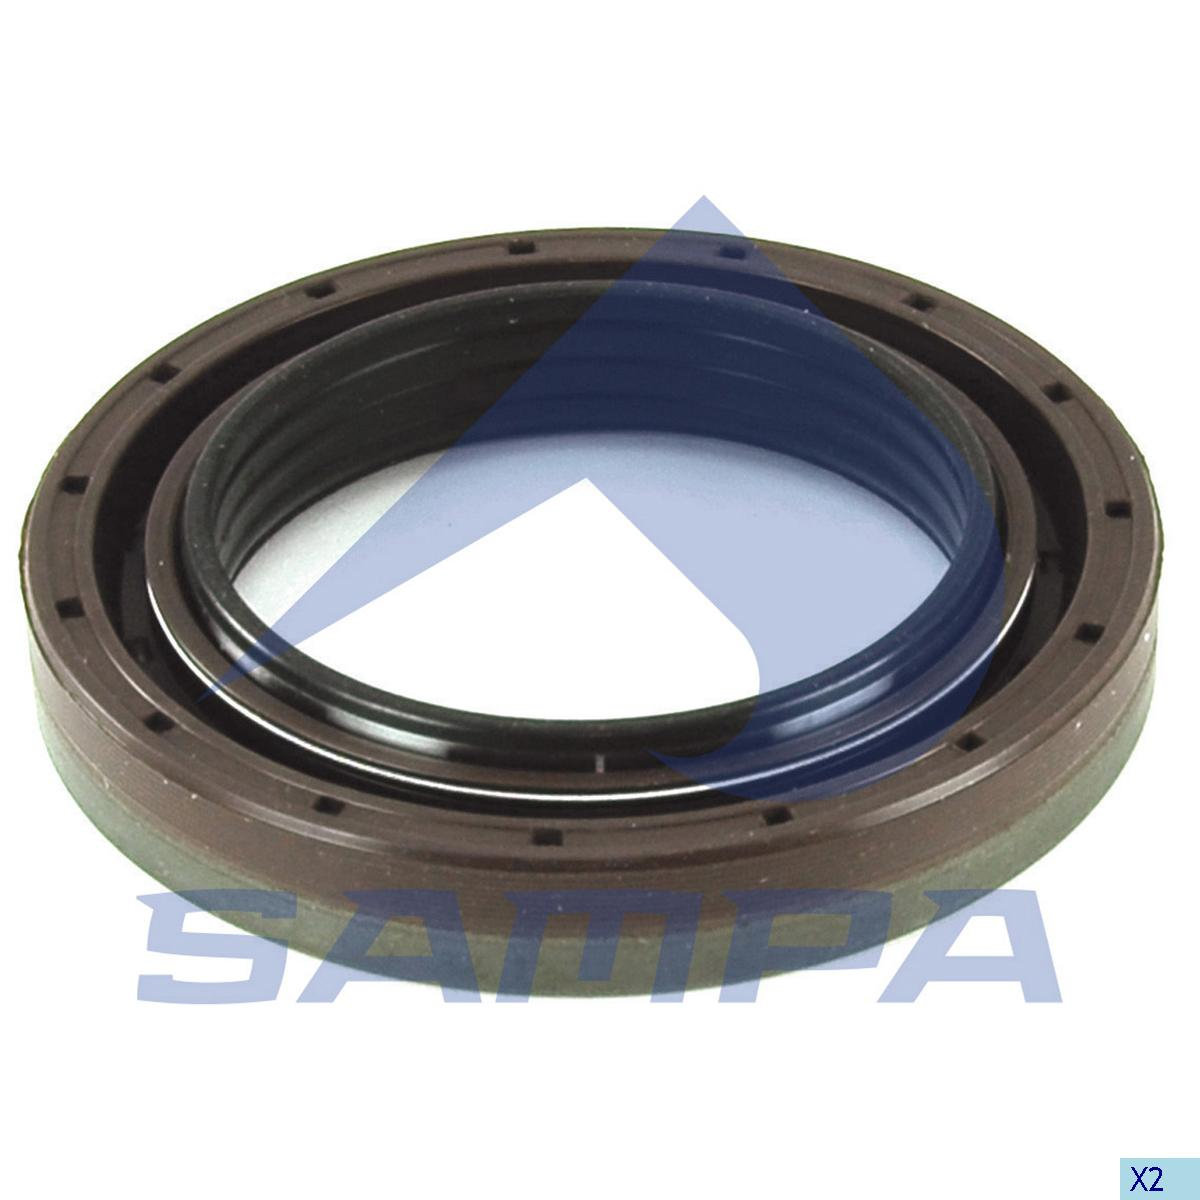 Seal Ring, Differential Gear Housing, Iveco, Power Unit